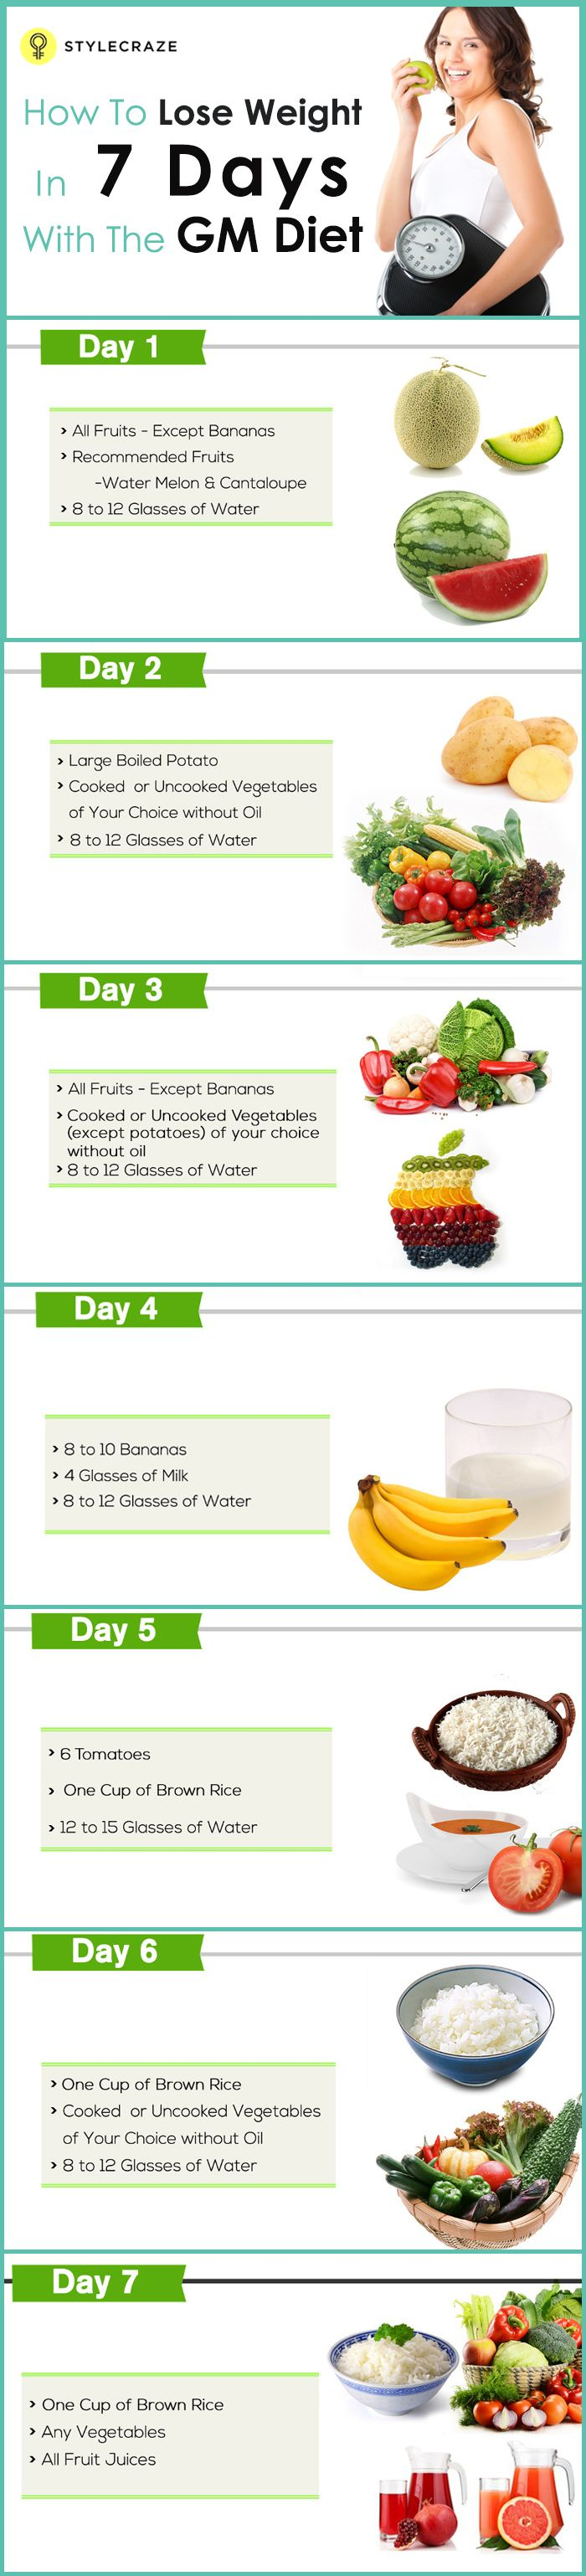 quick weight loss diets 7 days